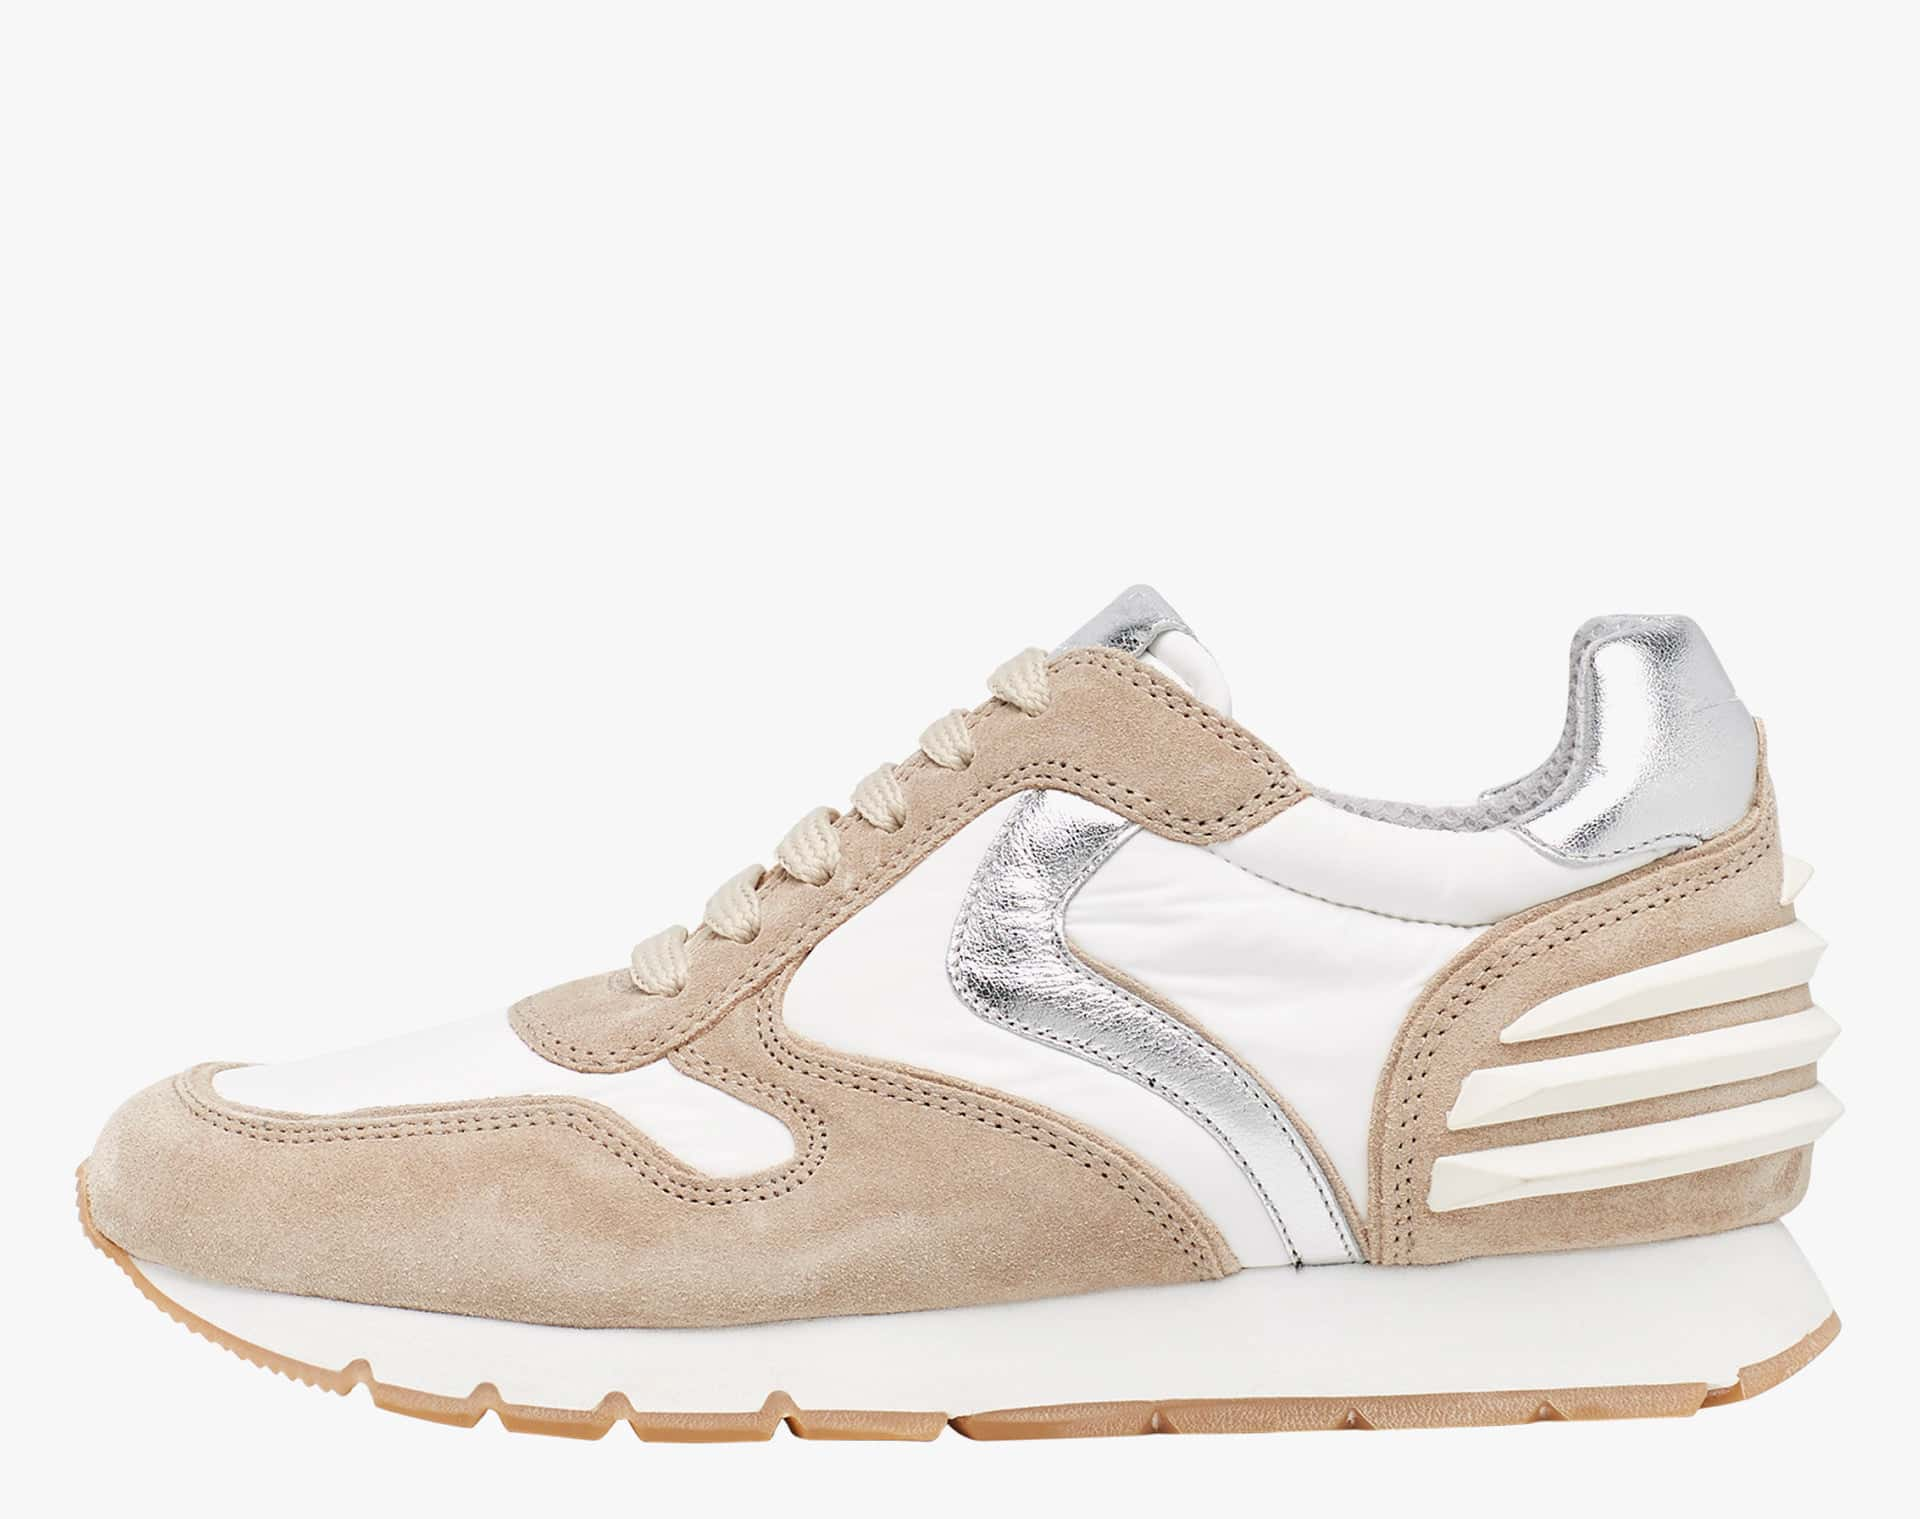 JULIA POWER - Vintage suede sneaker with silver details - Beige